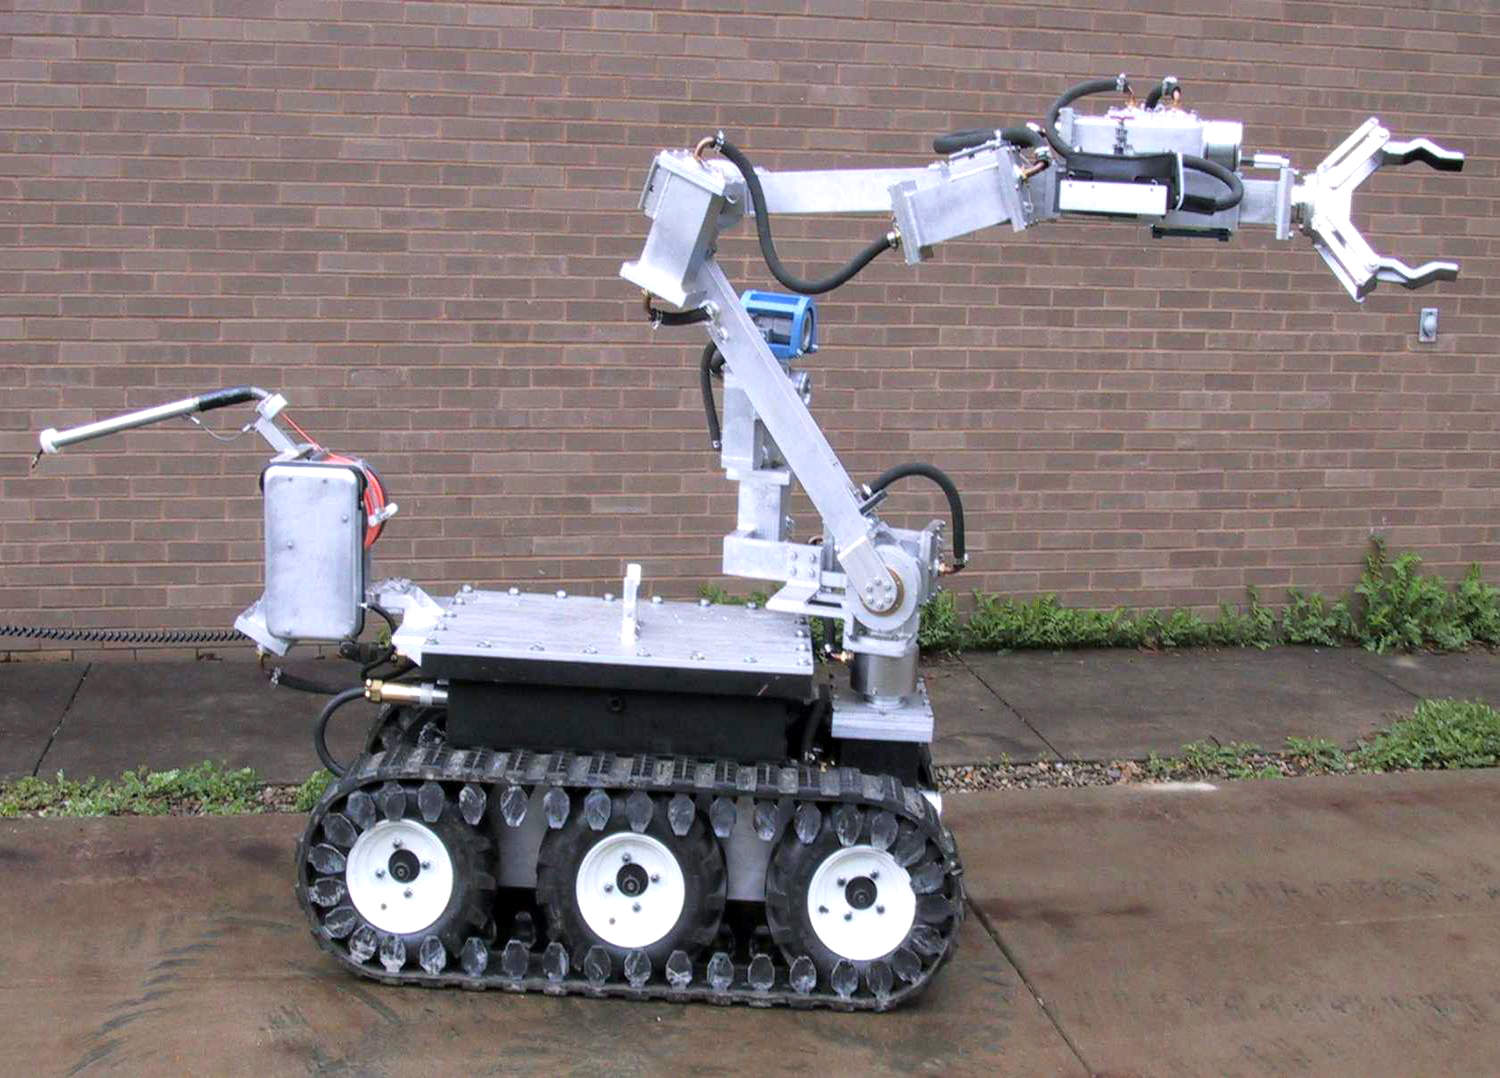 ANDROS_WolverineV2_Borehole_Robot.jpg